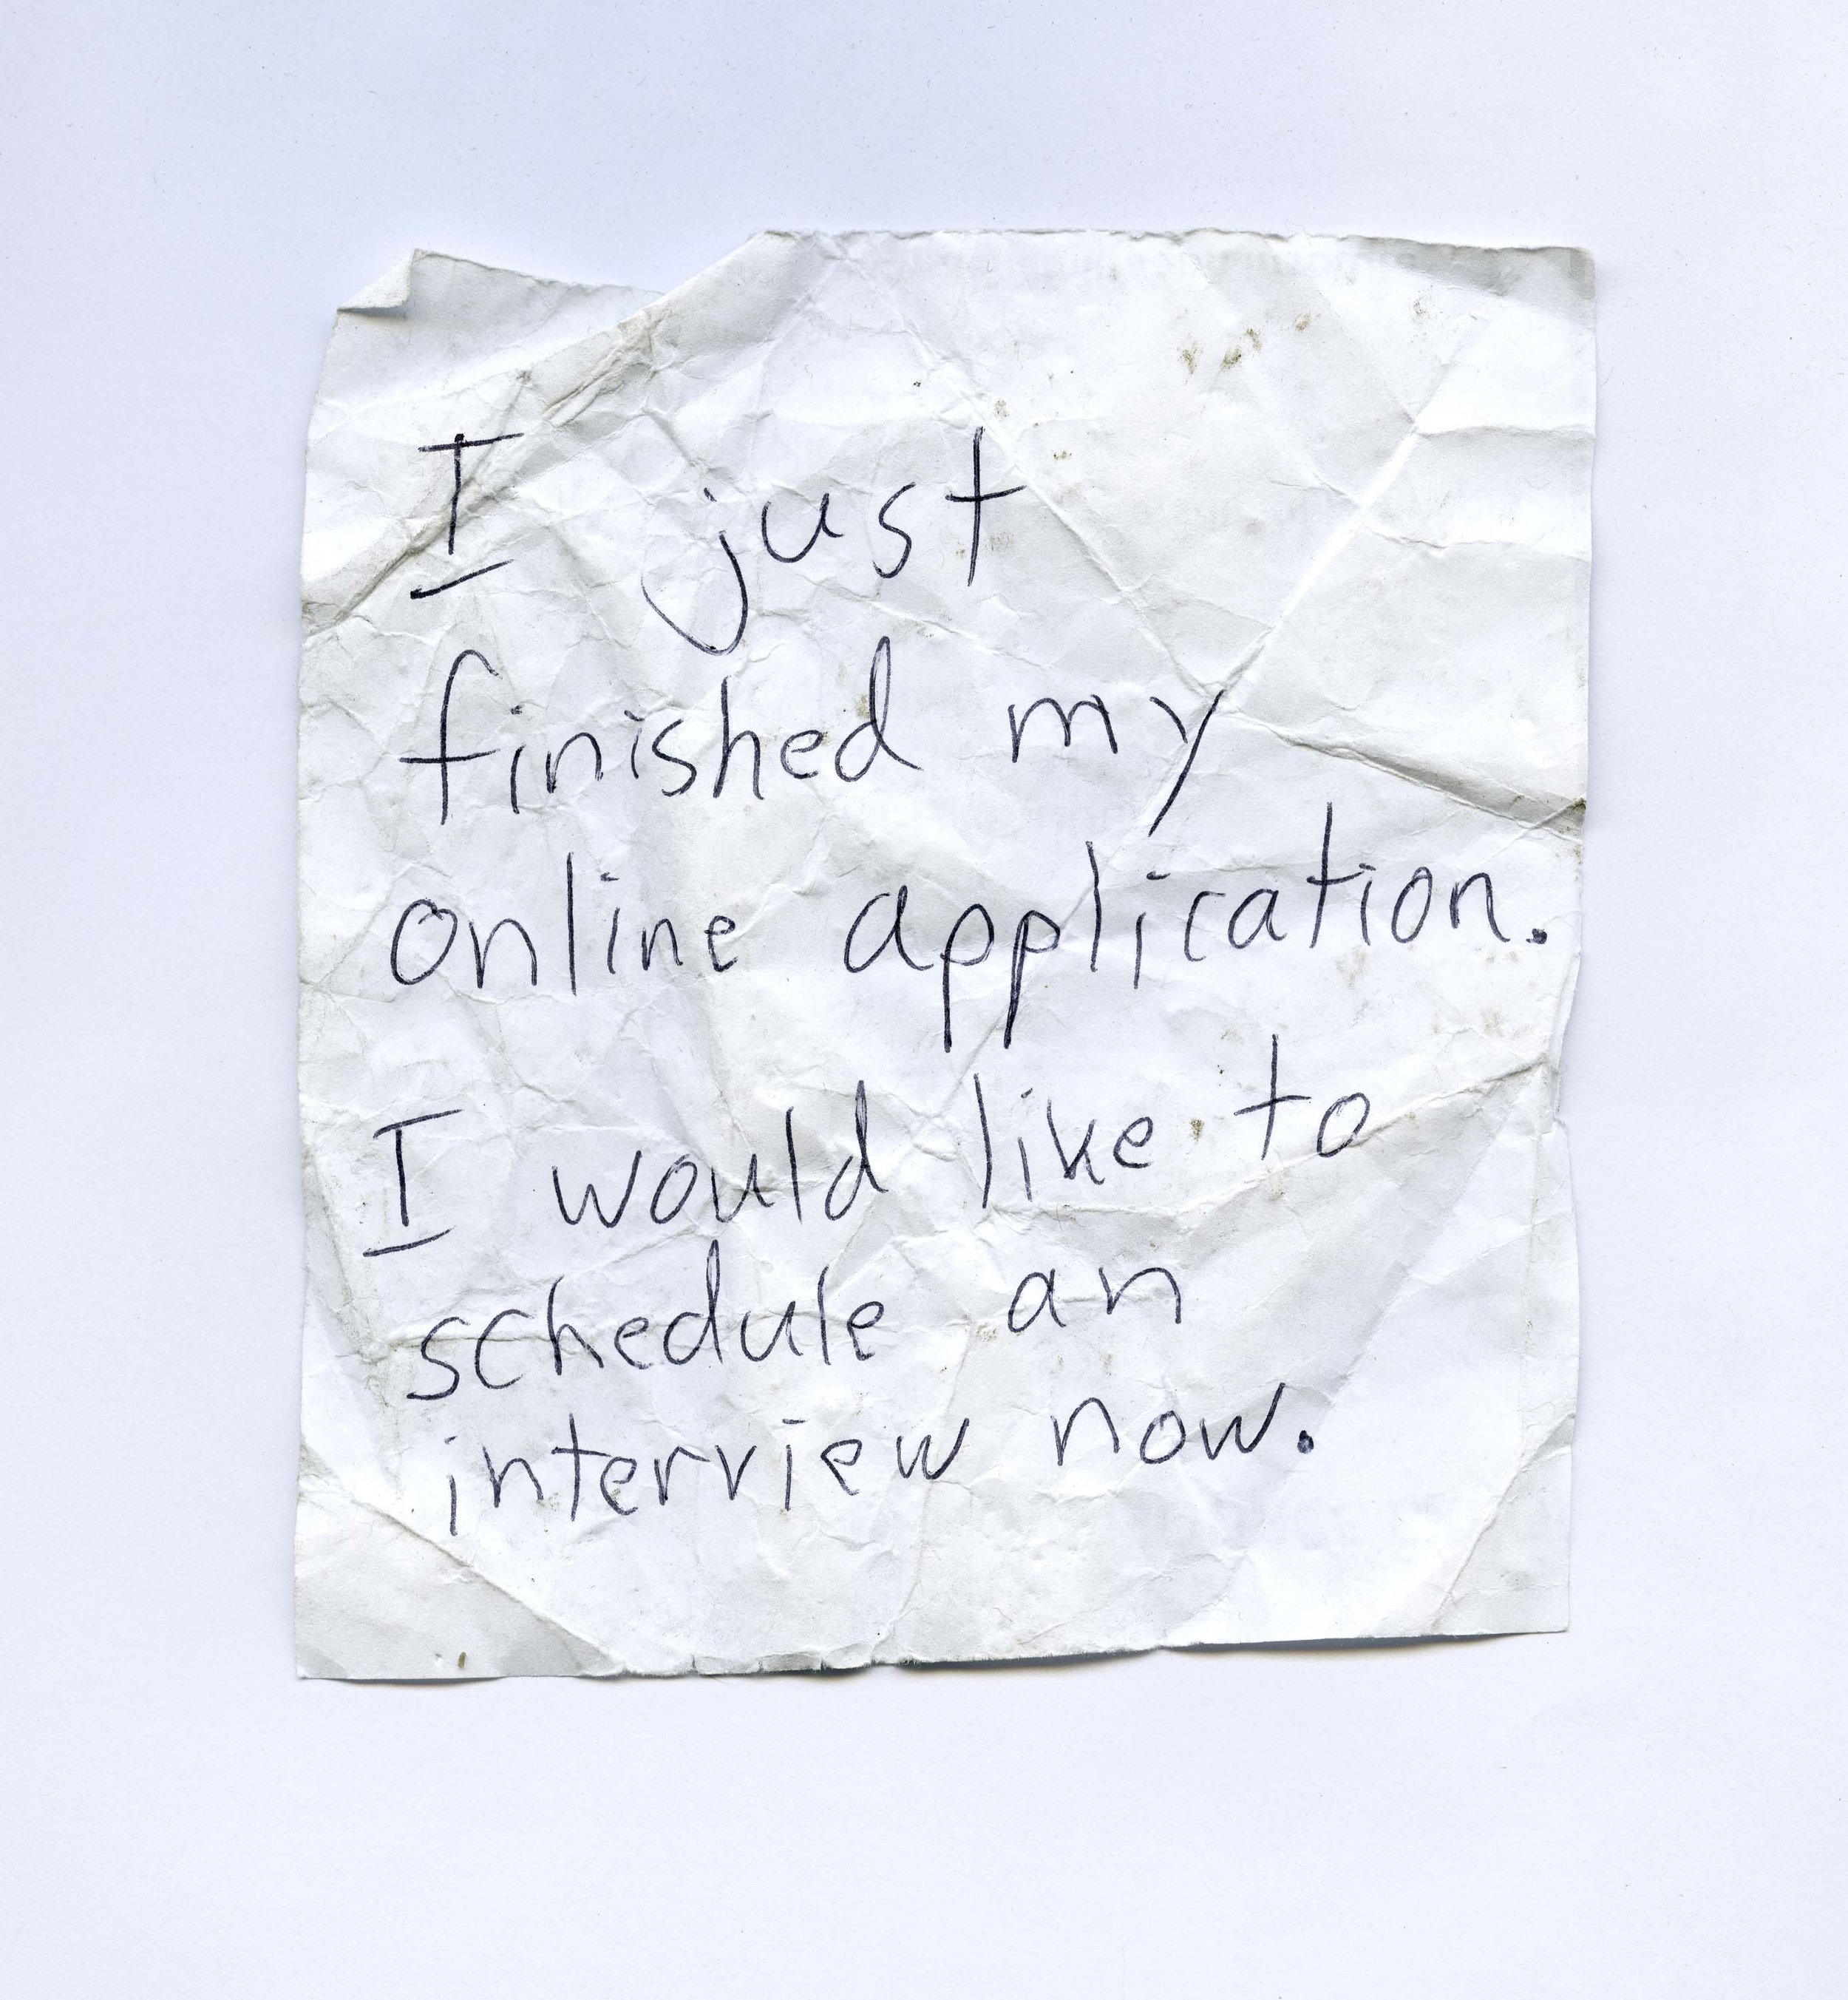 Note_Interview001.jpg